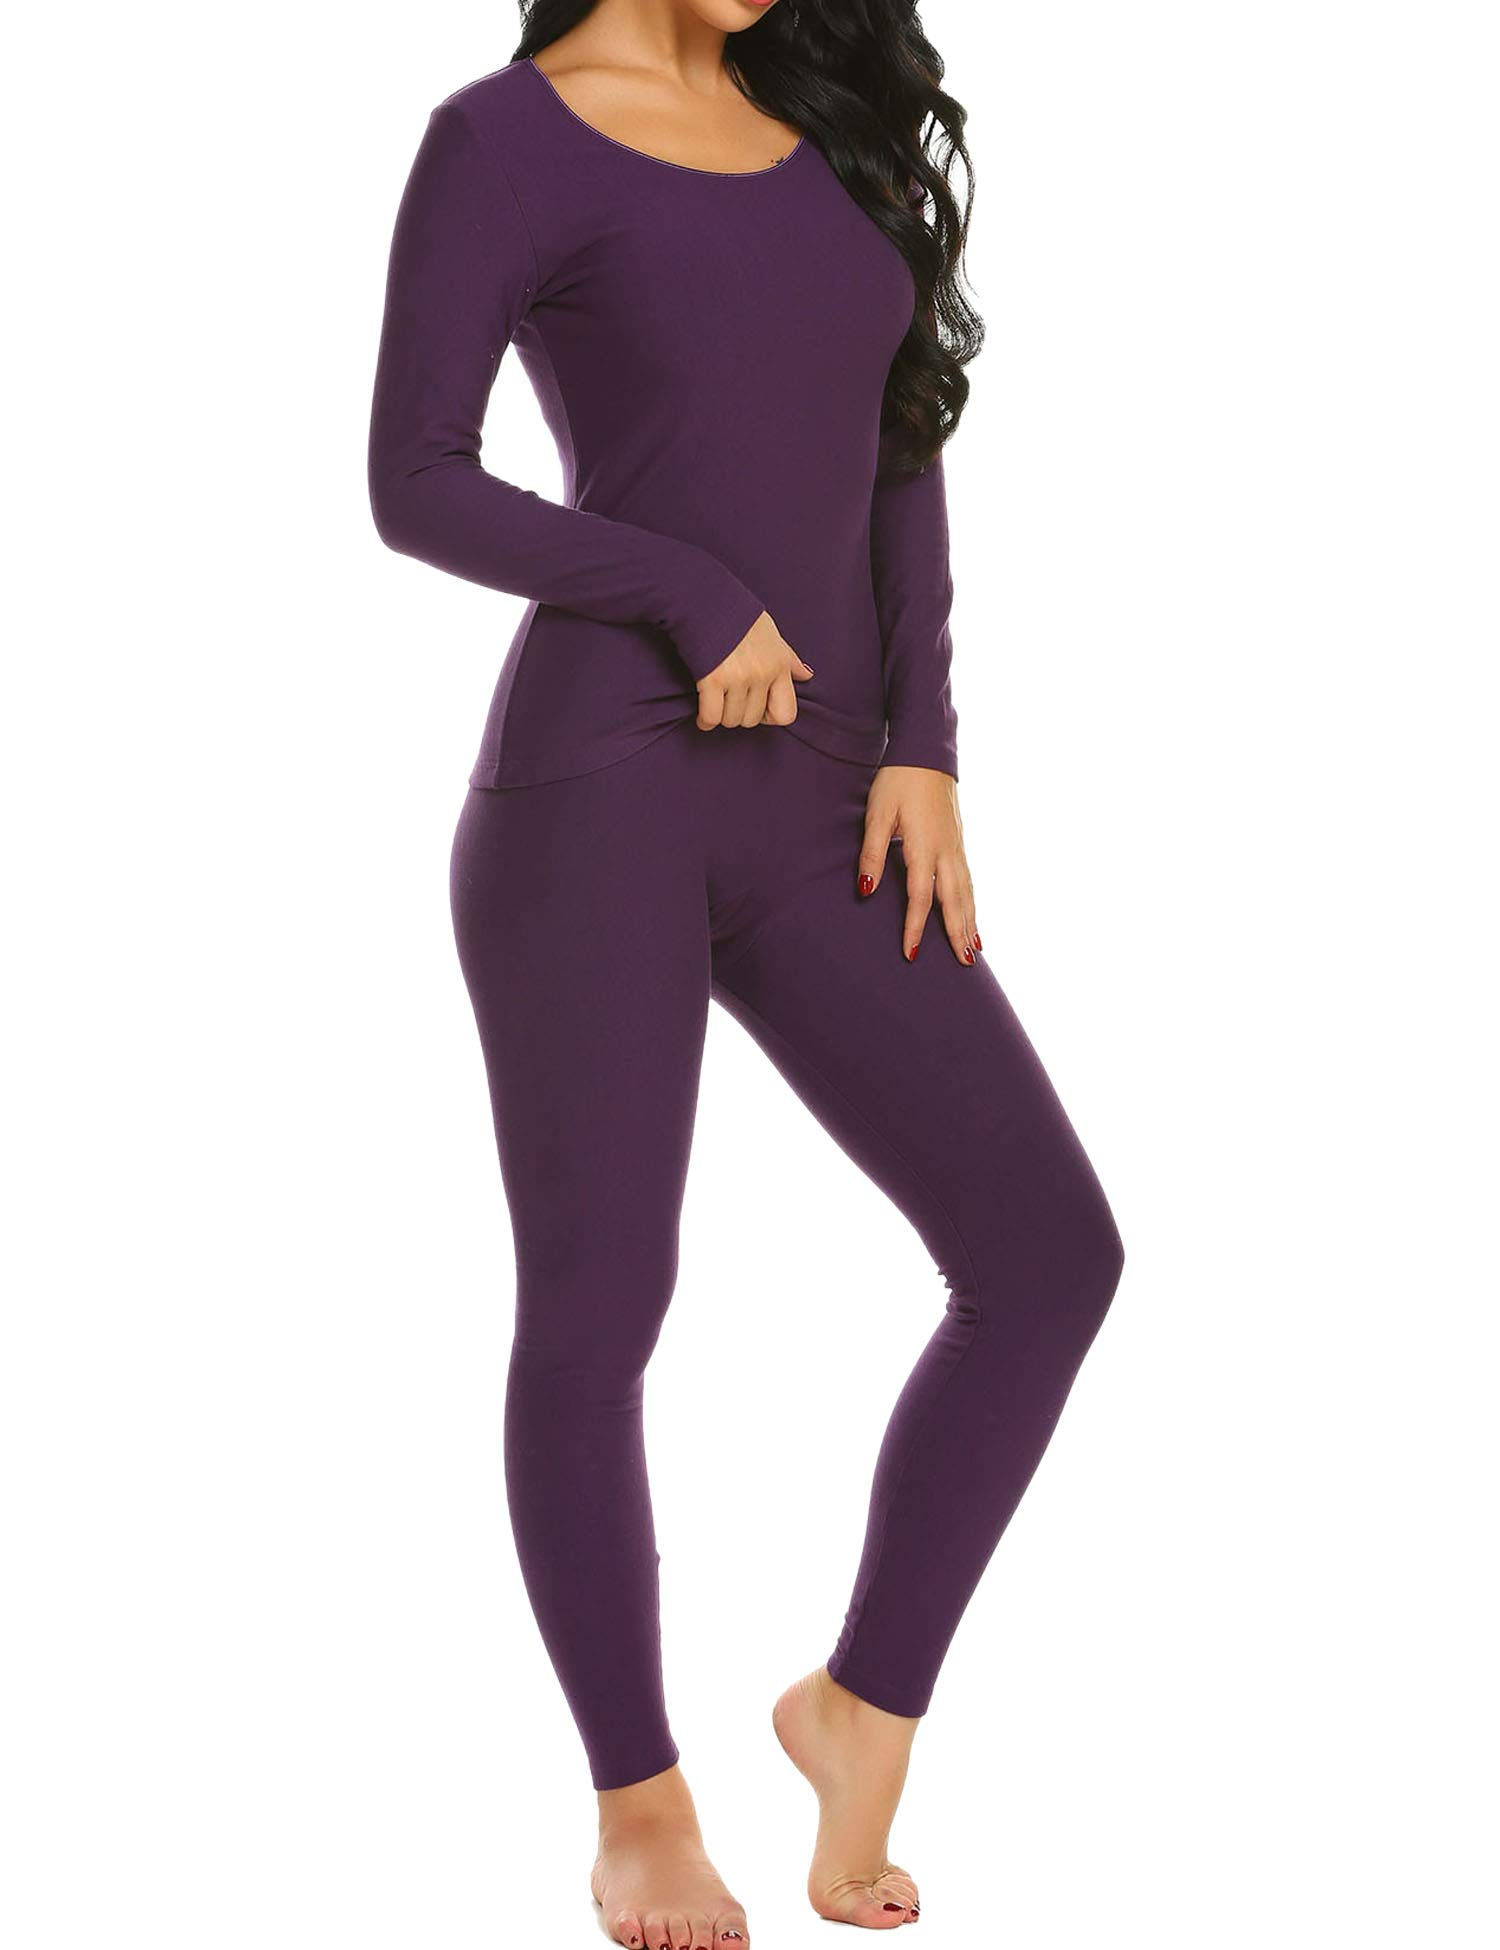 Ekouaer Long Thermal Underwear Fleece Lined Winter Base Layering Set for Women,Fleece-purple,Small by Ekouaer